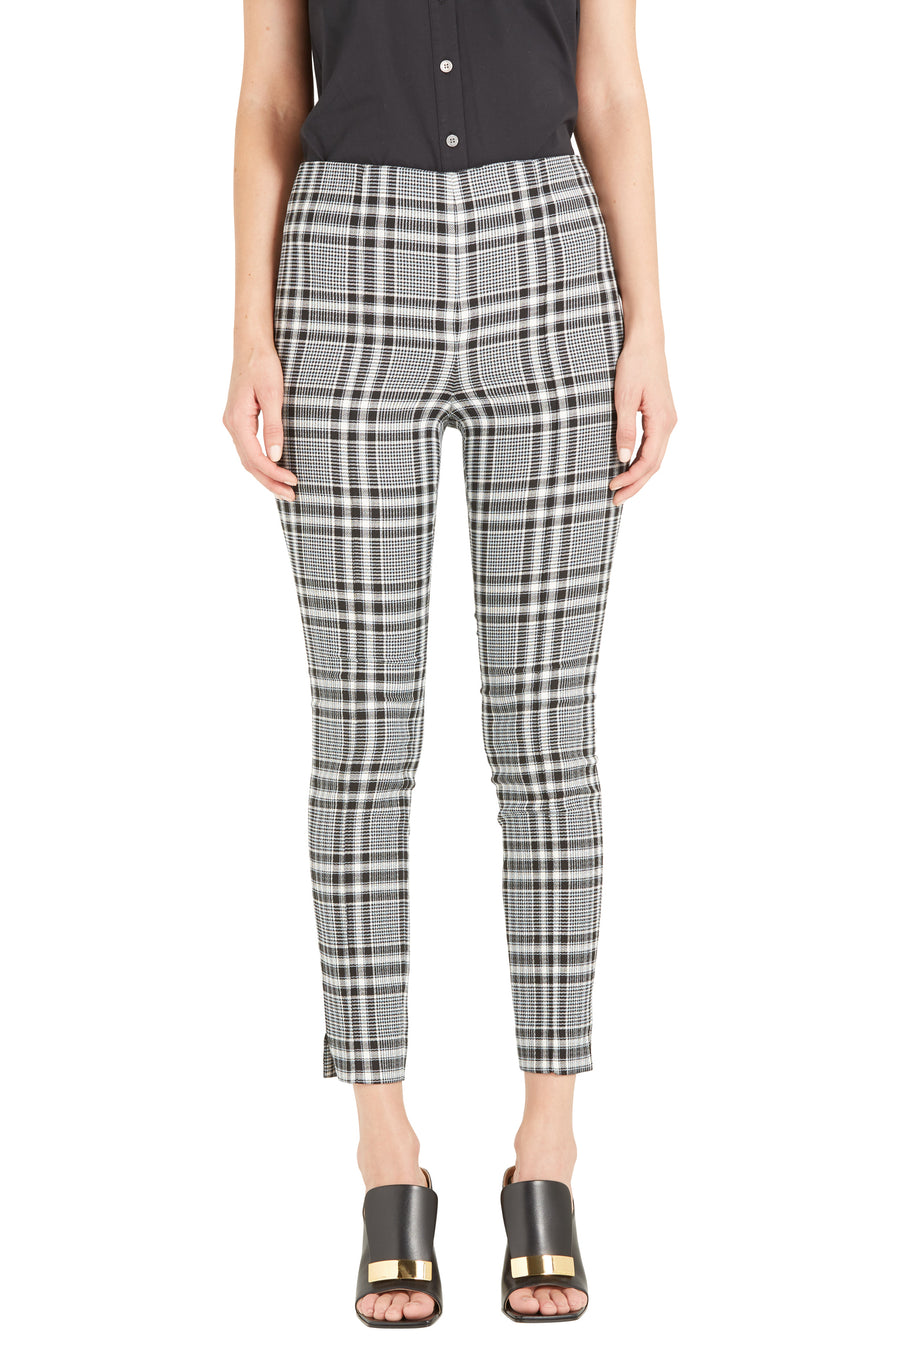 HONOLULU PLAID PANT